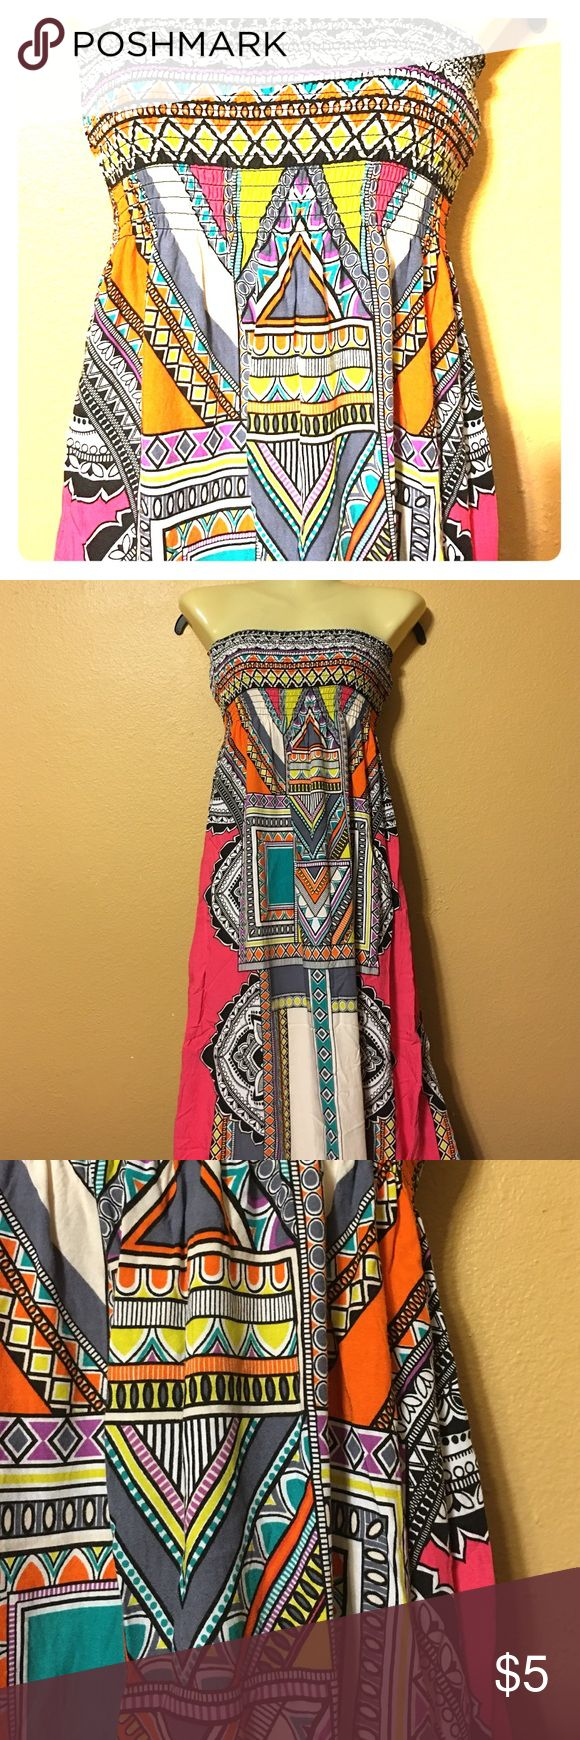 Tube top tribal maxi dress Tube top with a colorful tribal pattern maxi dress. Dresses Maxi